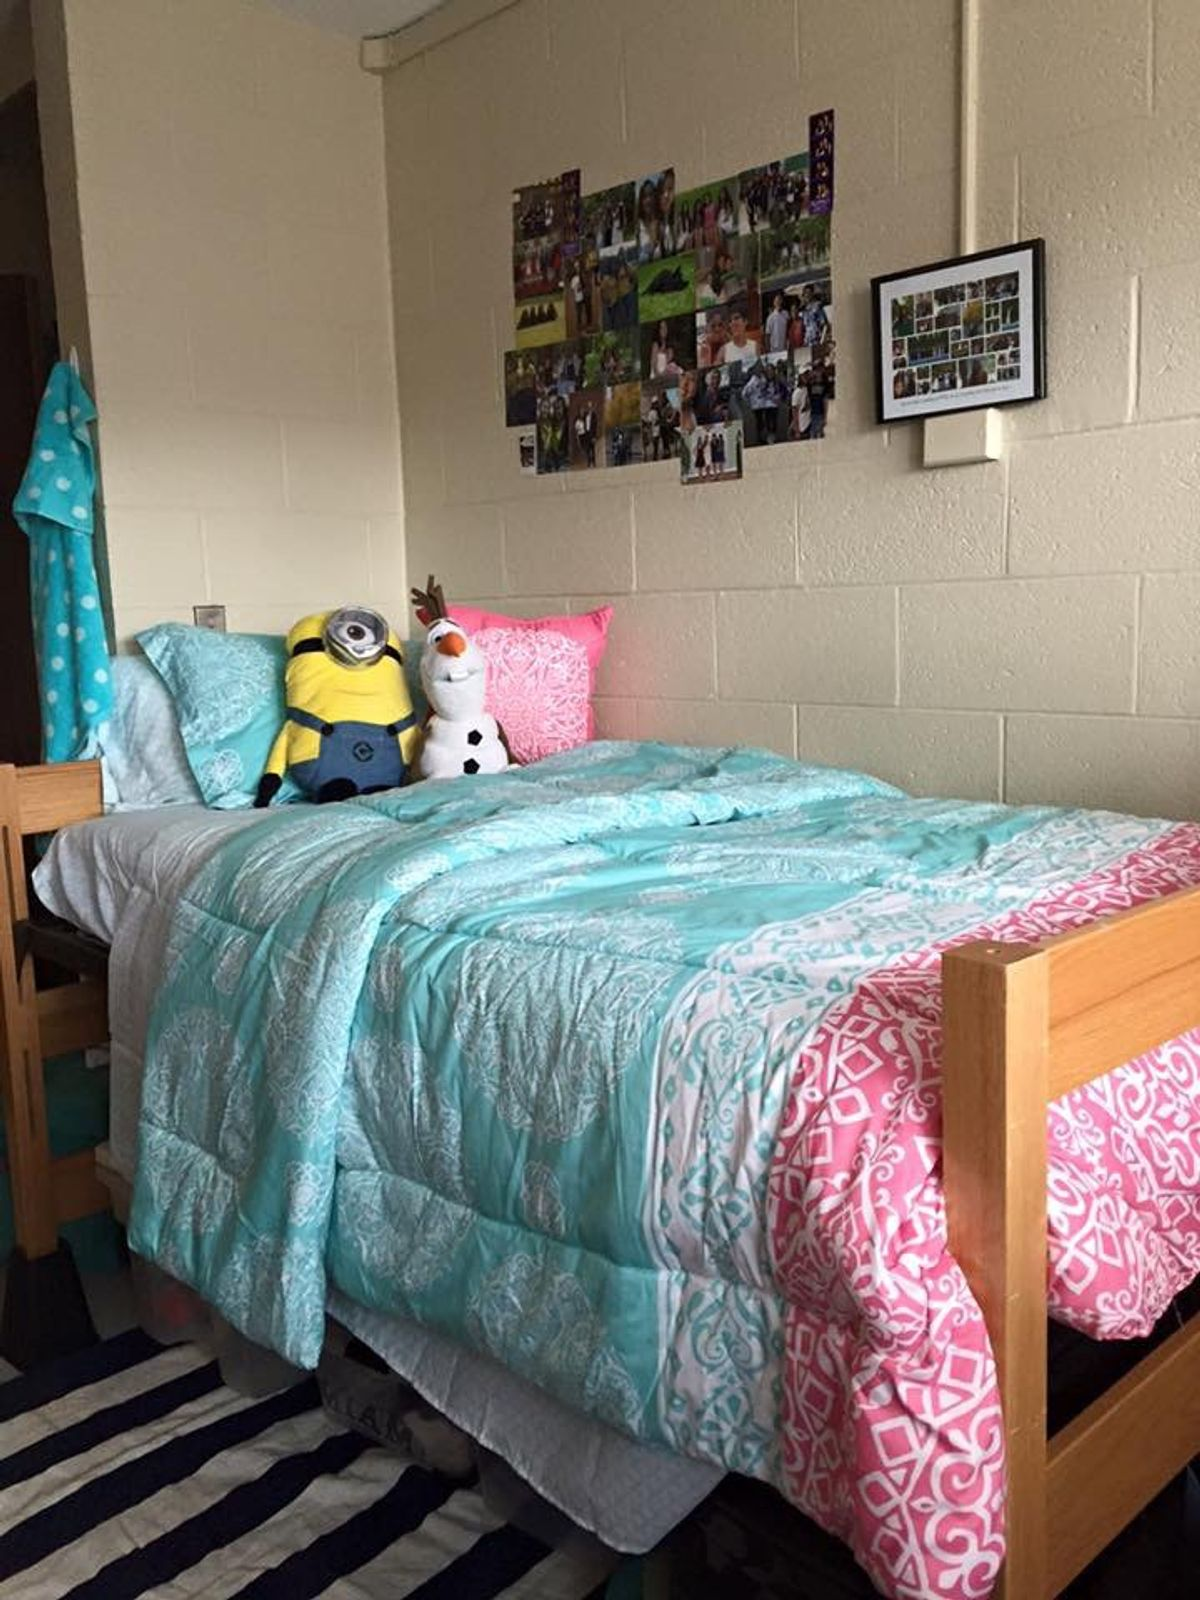 An Open Letter To The Girl Moving Into My Old Room